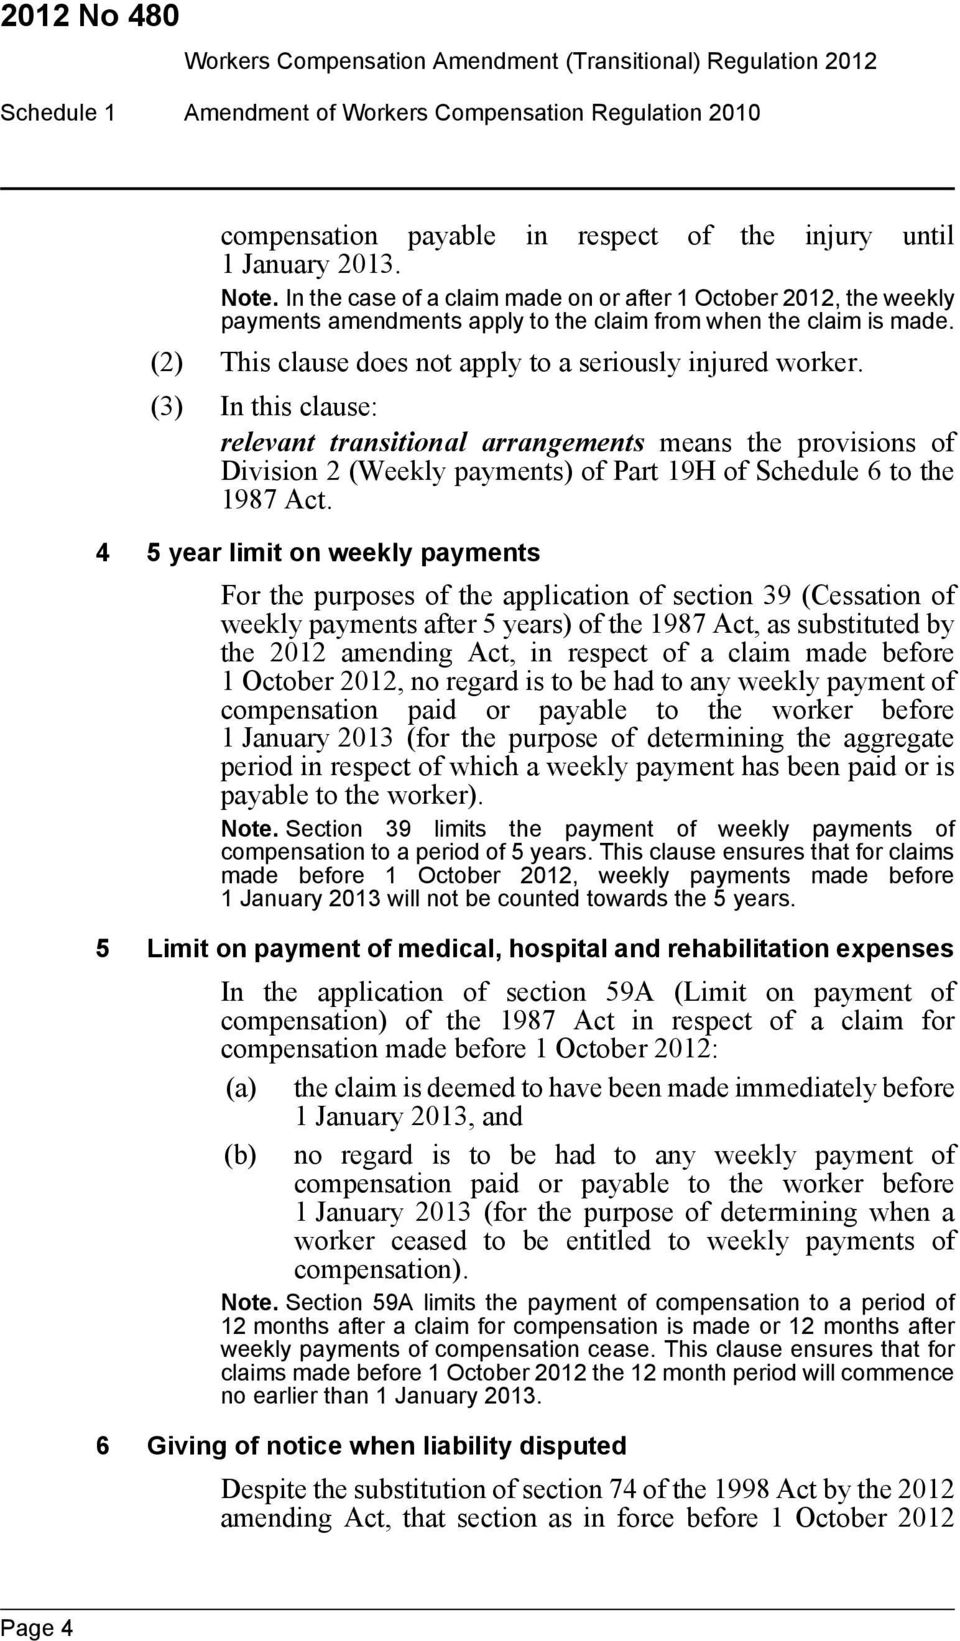 (3) In this clause: relevant transitional arrangements means the provisions of Division 2 (Weekly payments) of Part 19H of Schedule 6 to the 1987 Act.